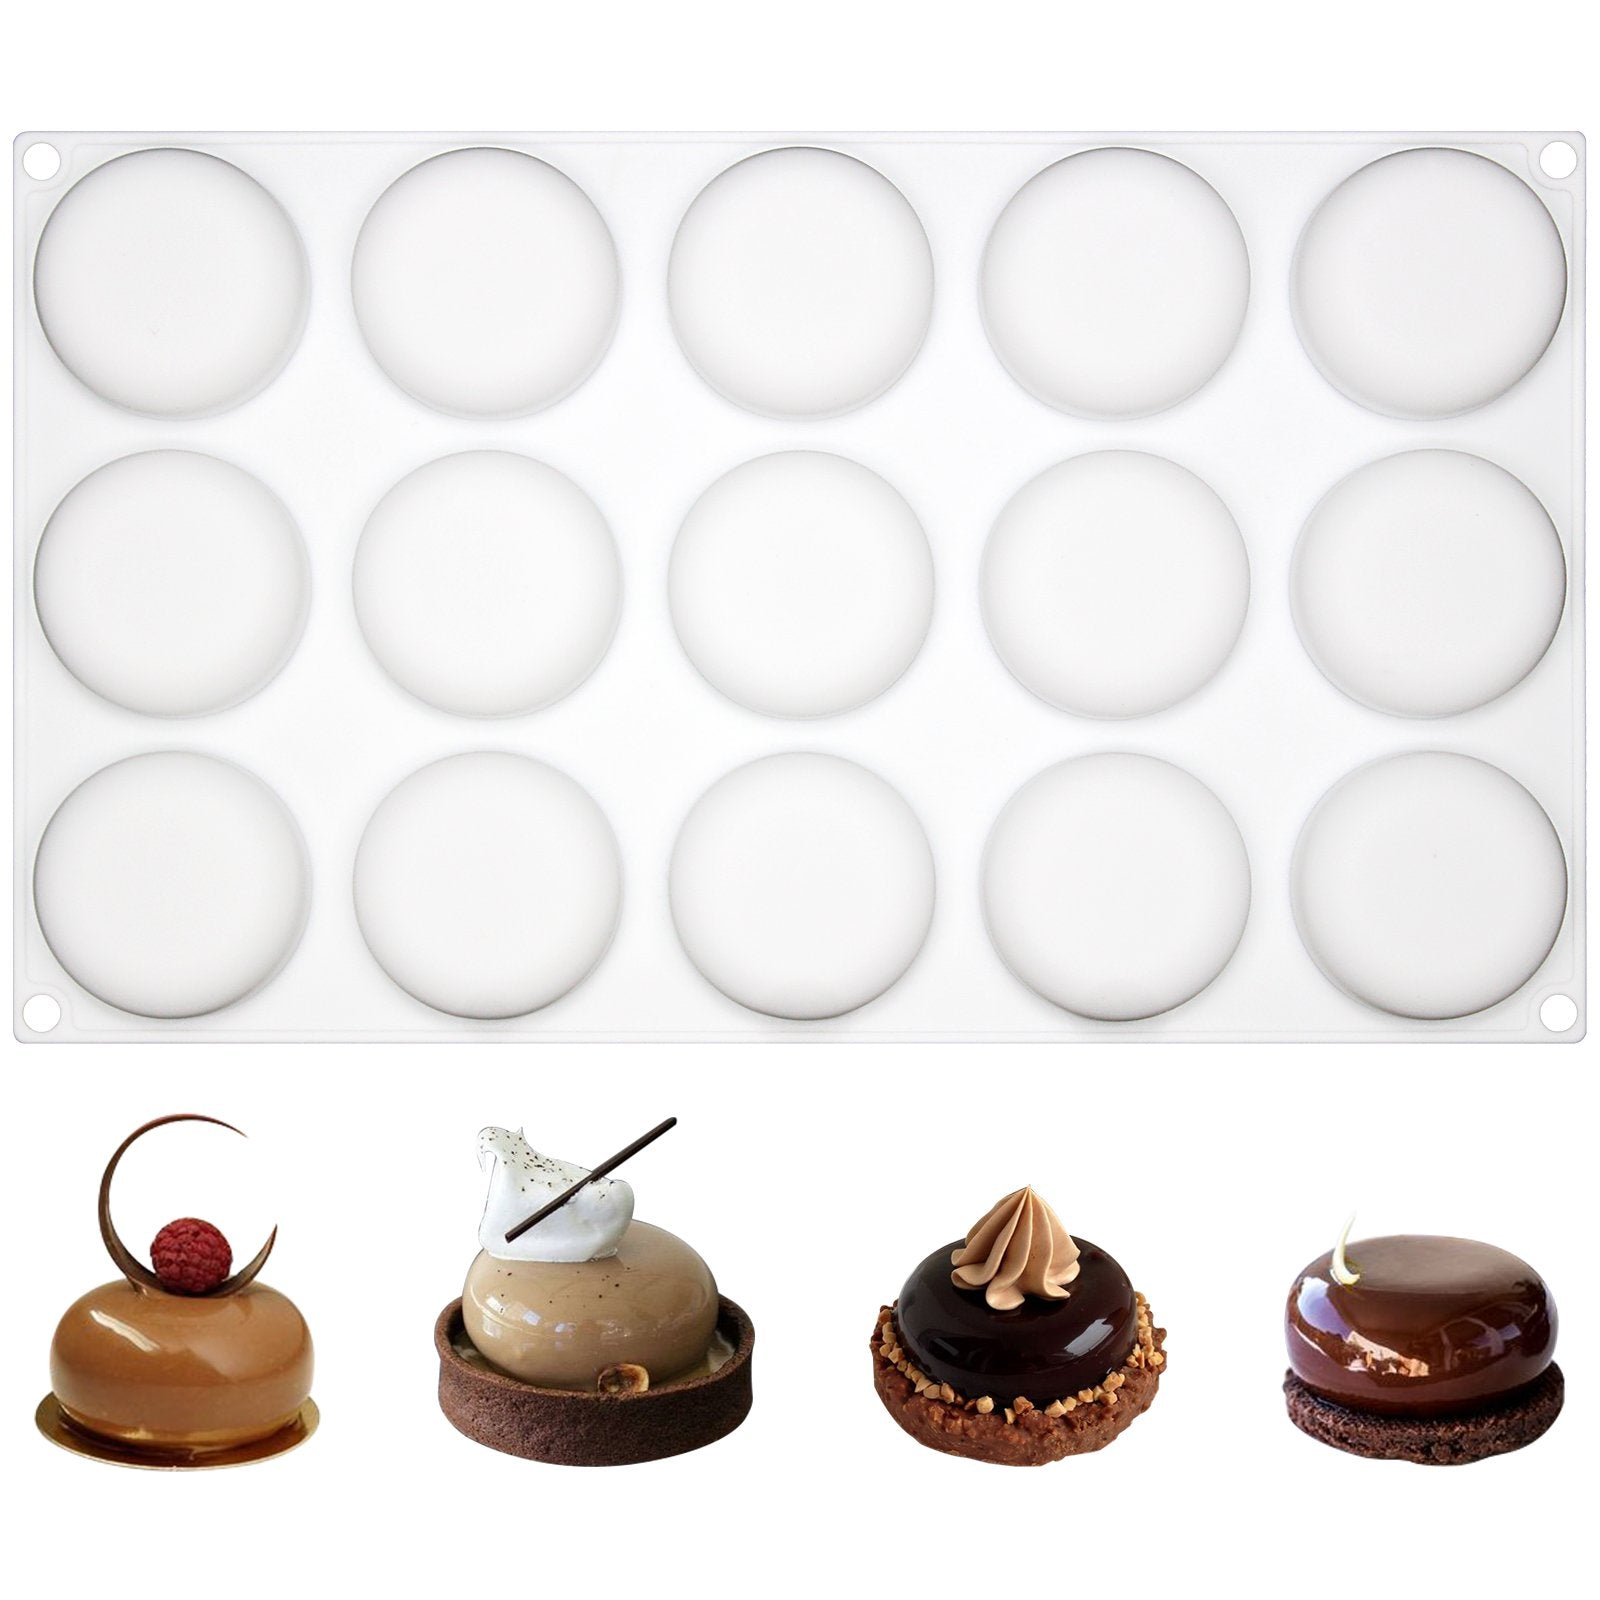 Curved Round Stone Silicone Mold Tray 15 Cavity 1.8x1.8x0.7inch